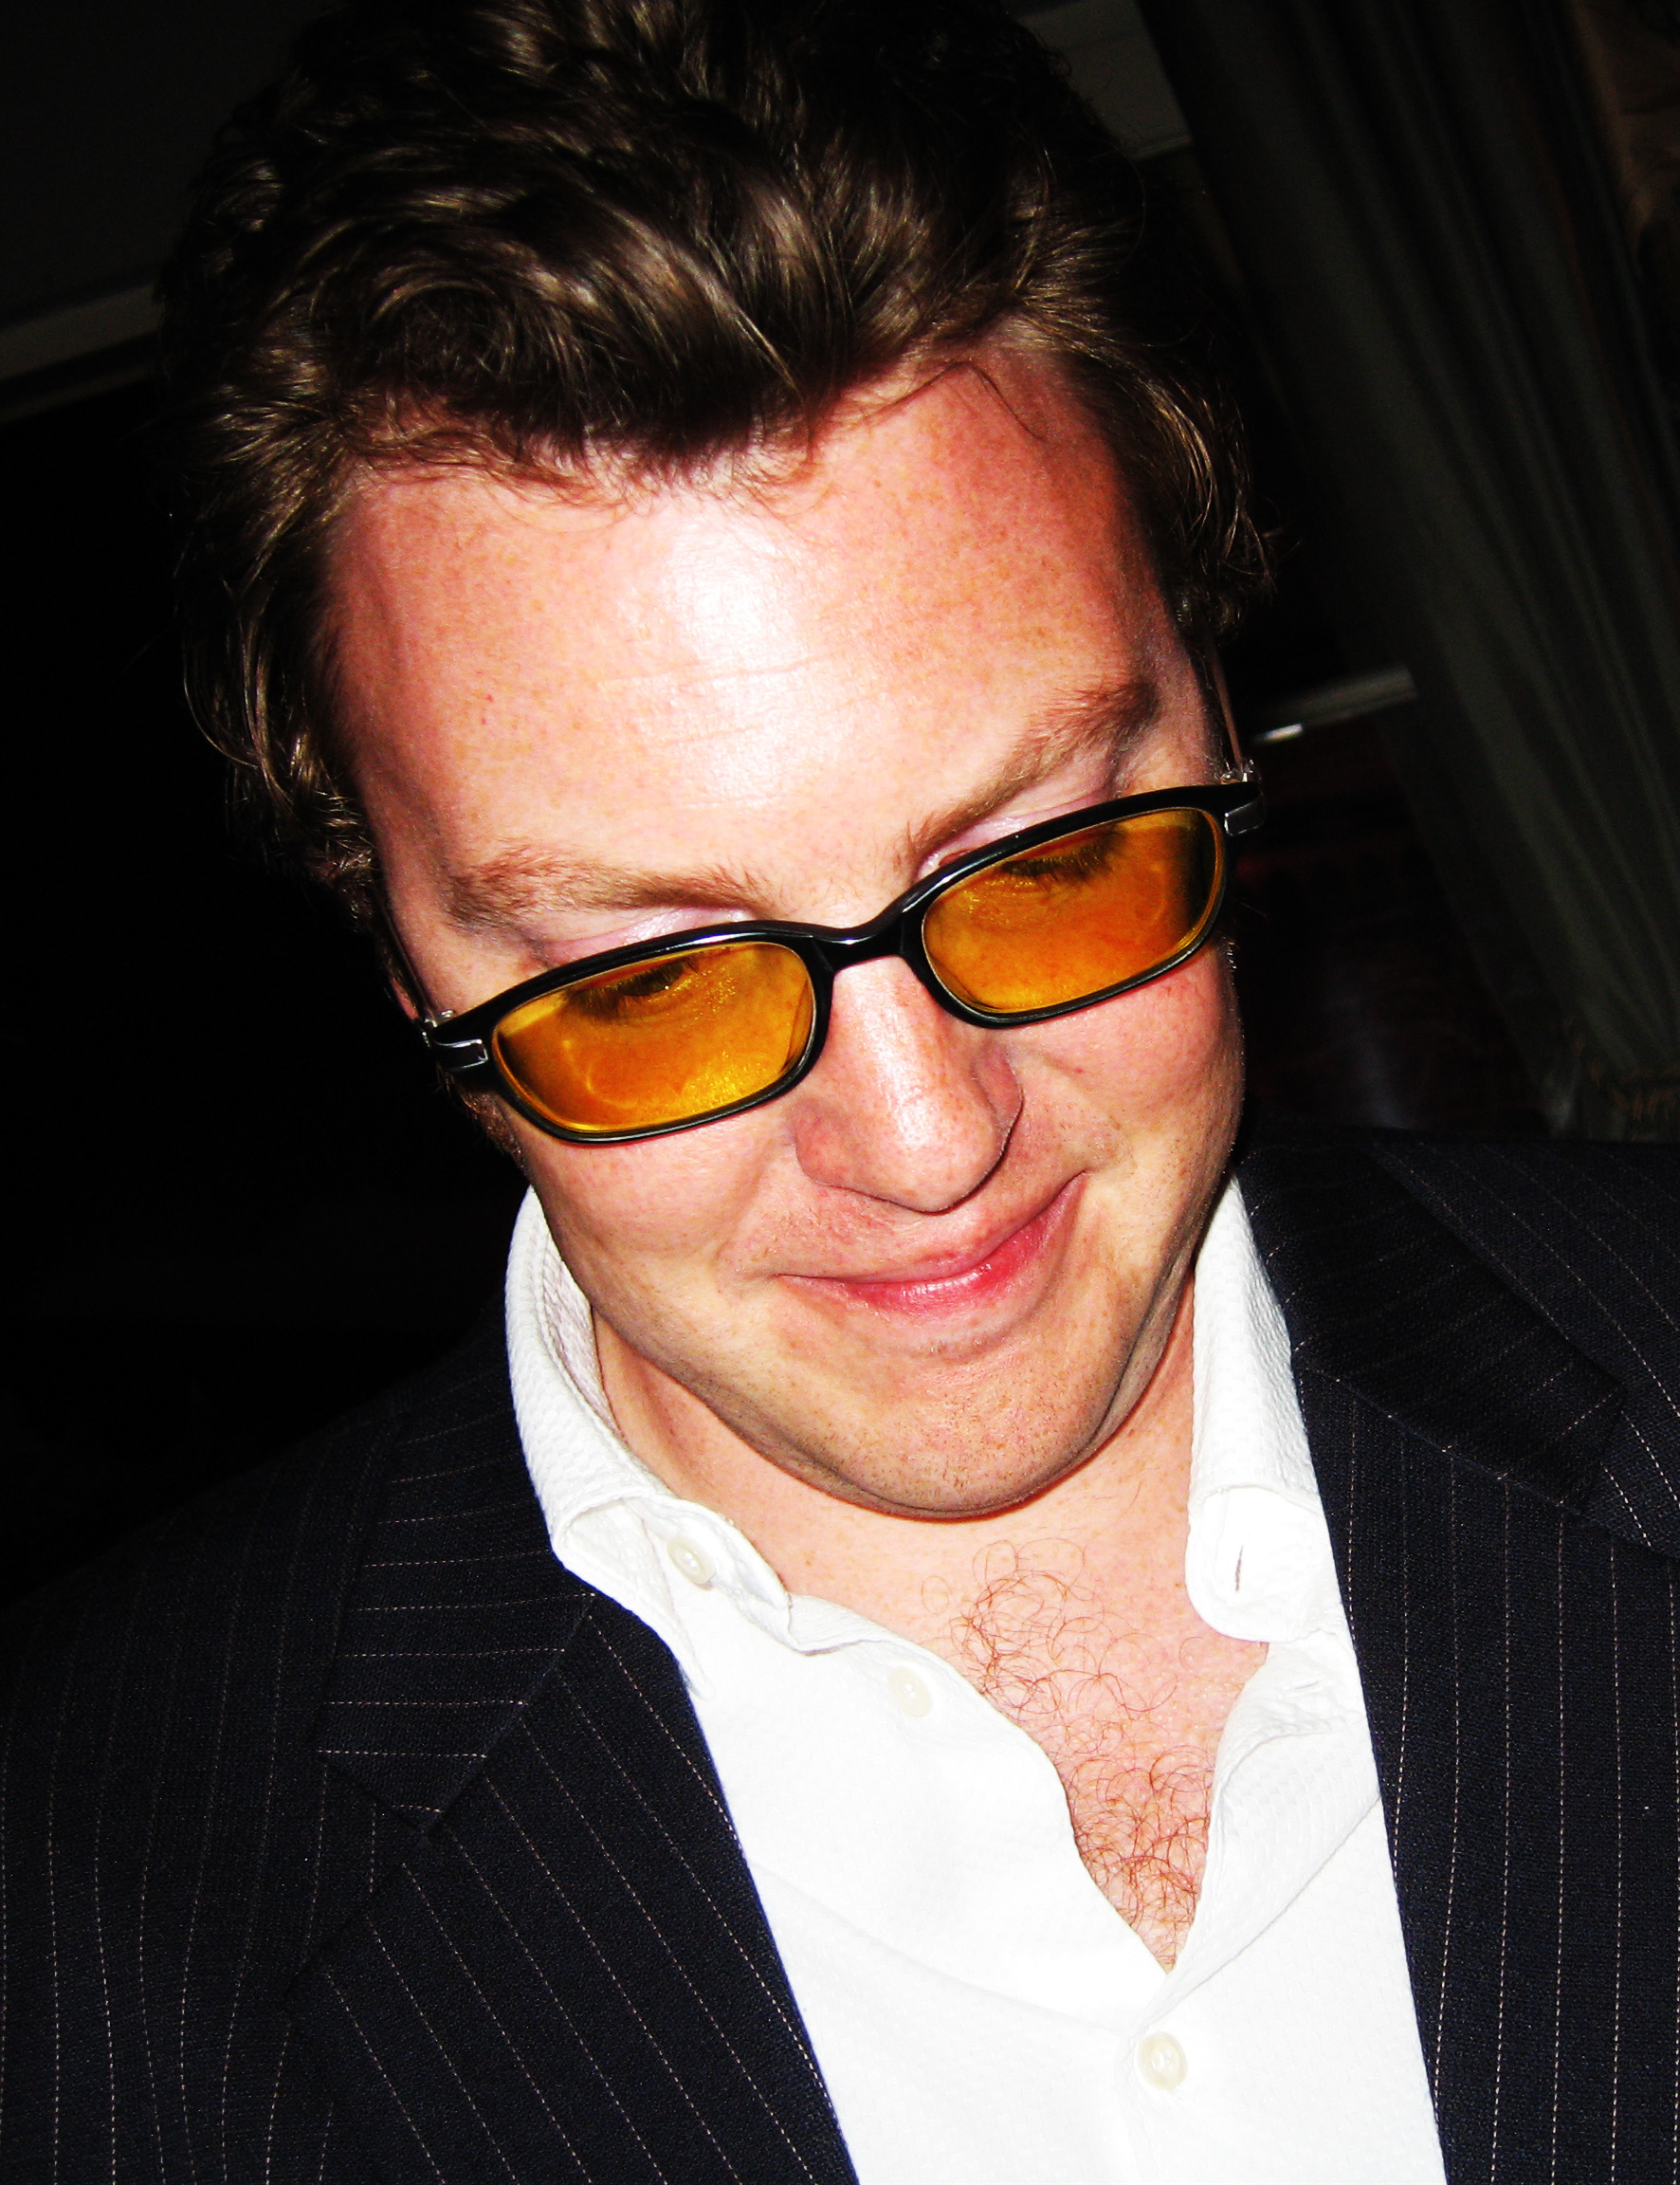 Matt Shearer at The BAFTAS - 2006